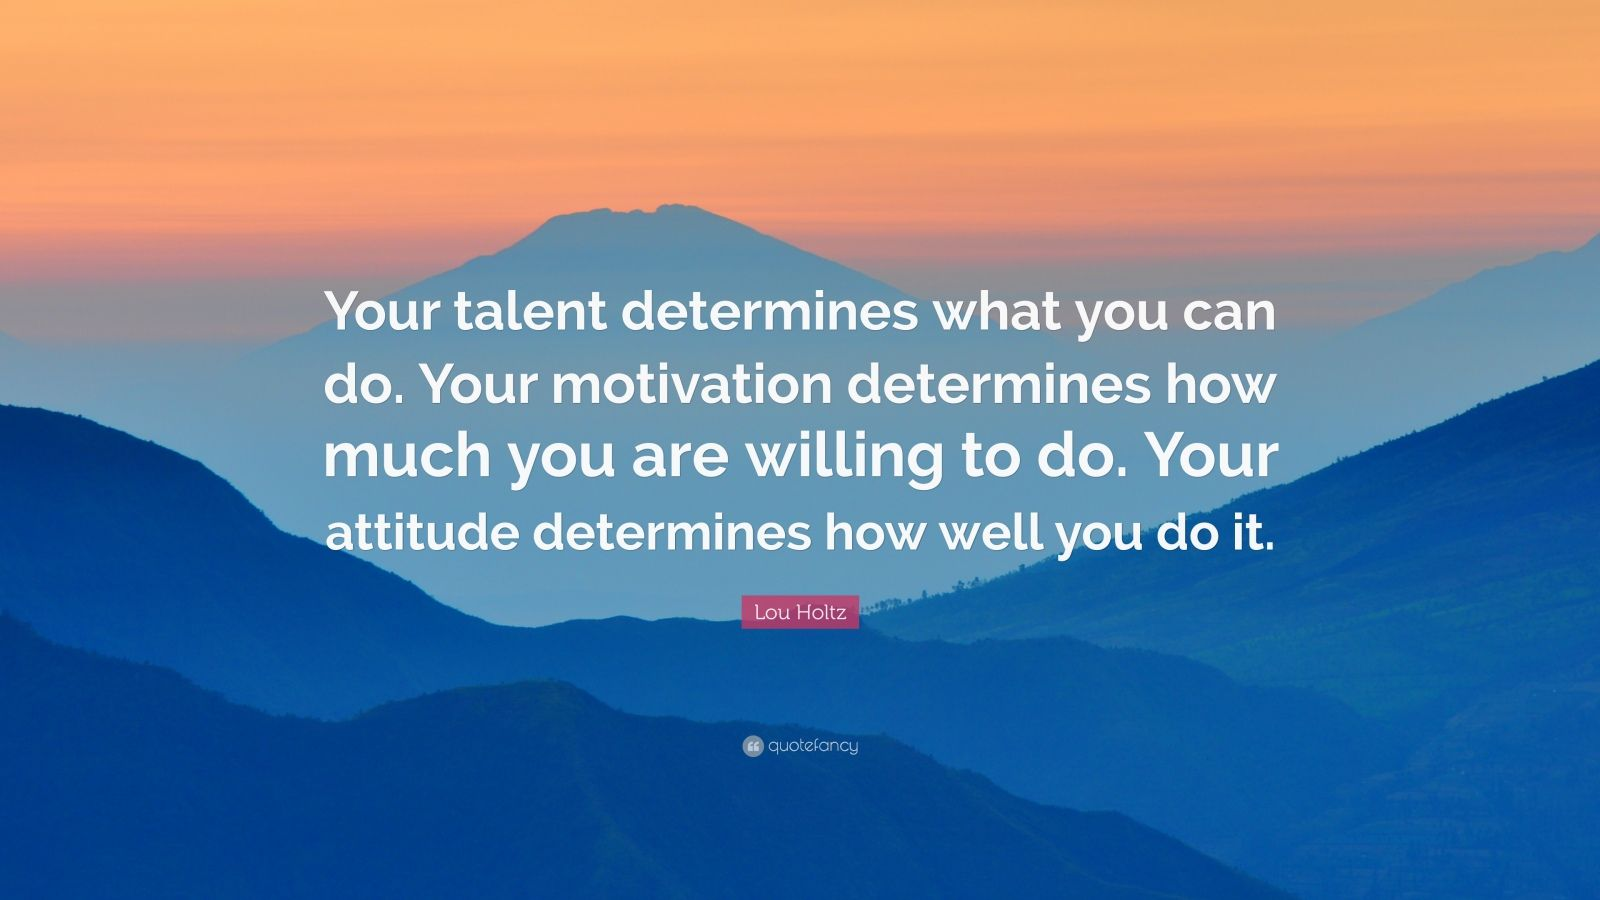 """Lou Holtz Quote: """"Your talent determines what you can do. Your motivation determines how much you are willing to do. Your attitude determines how well you do it."""""""